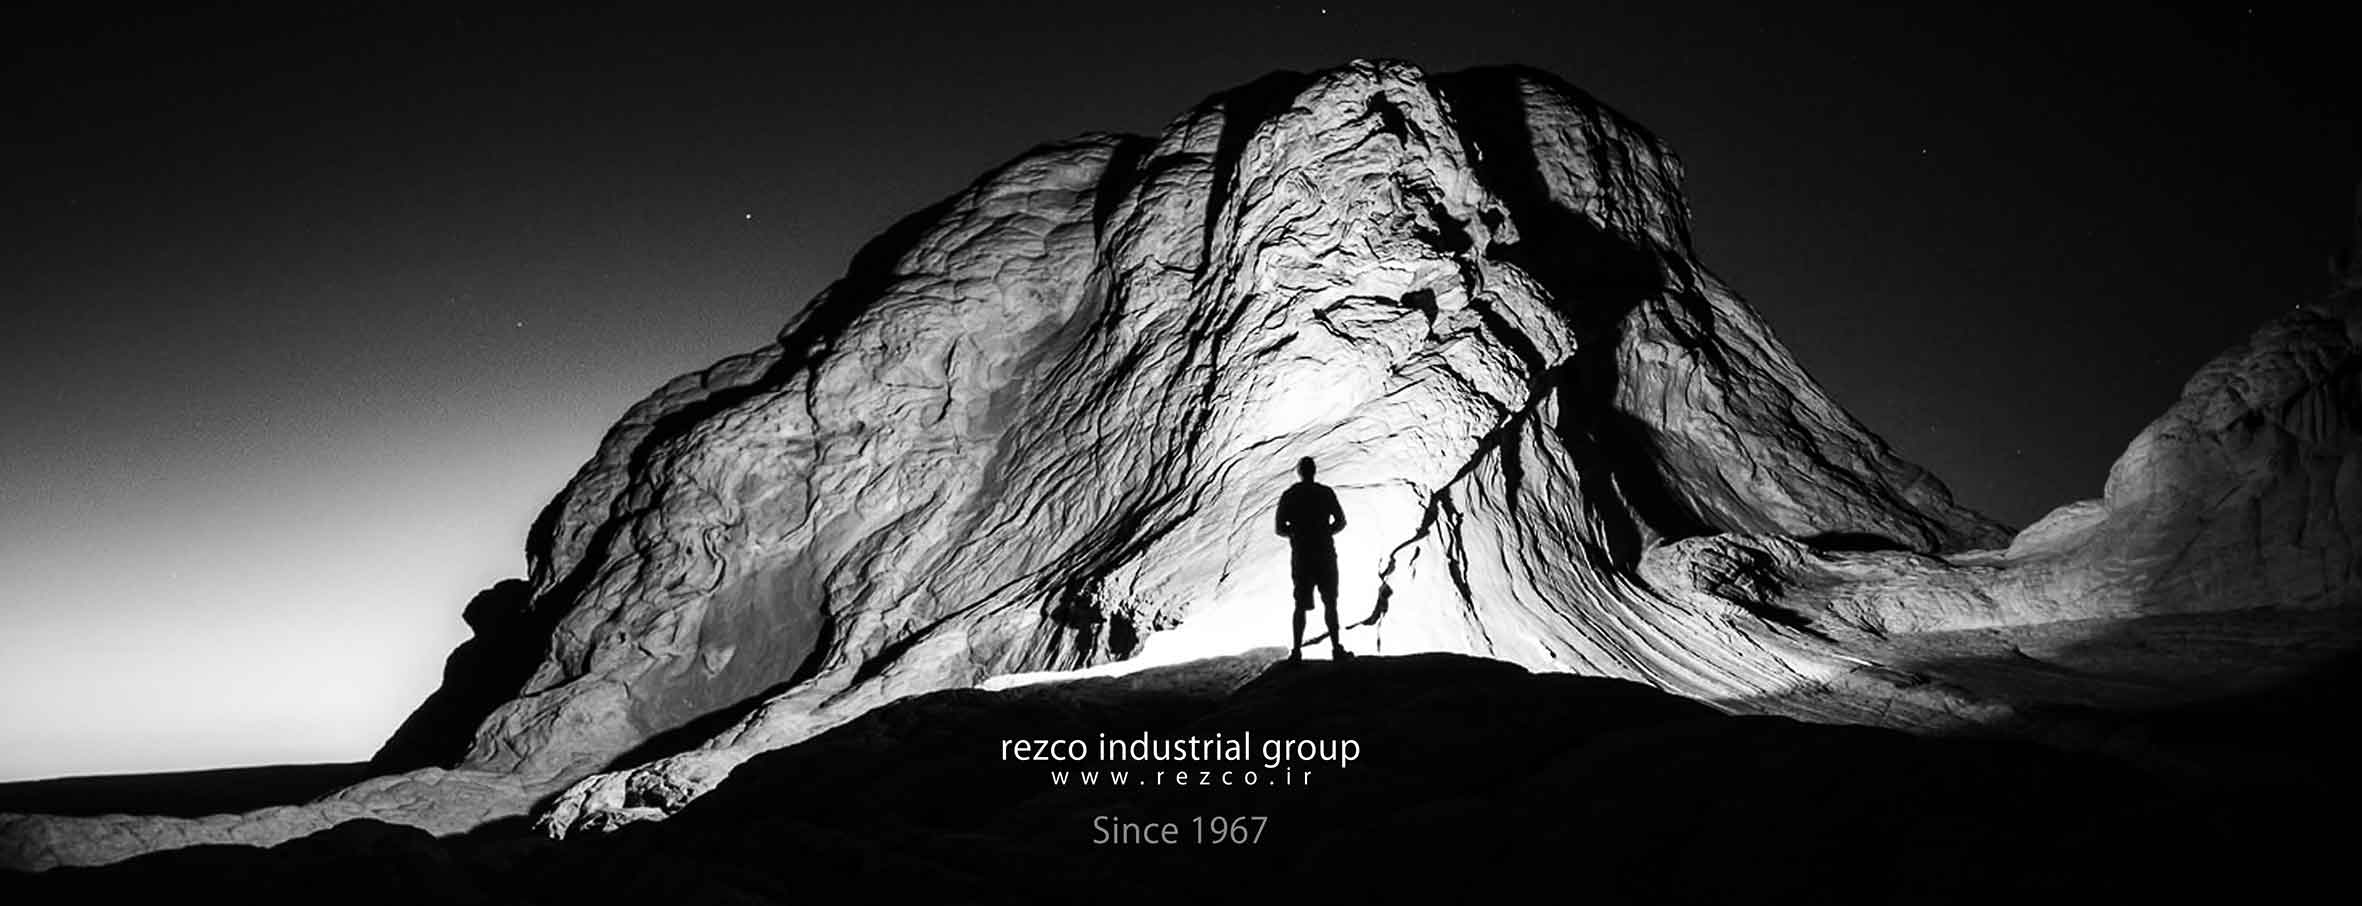 REZCO INDUSTRIAL GROUP